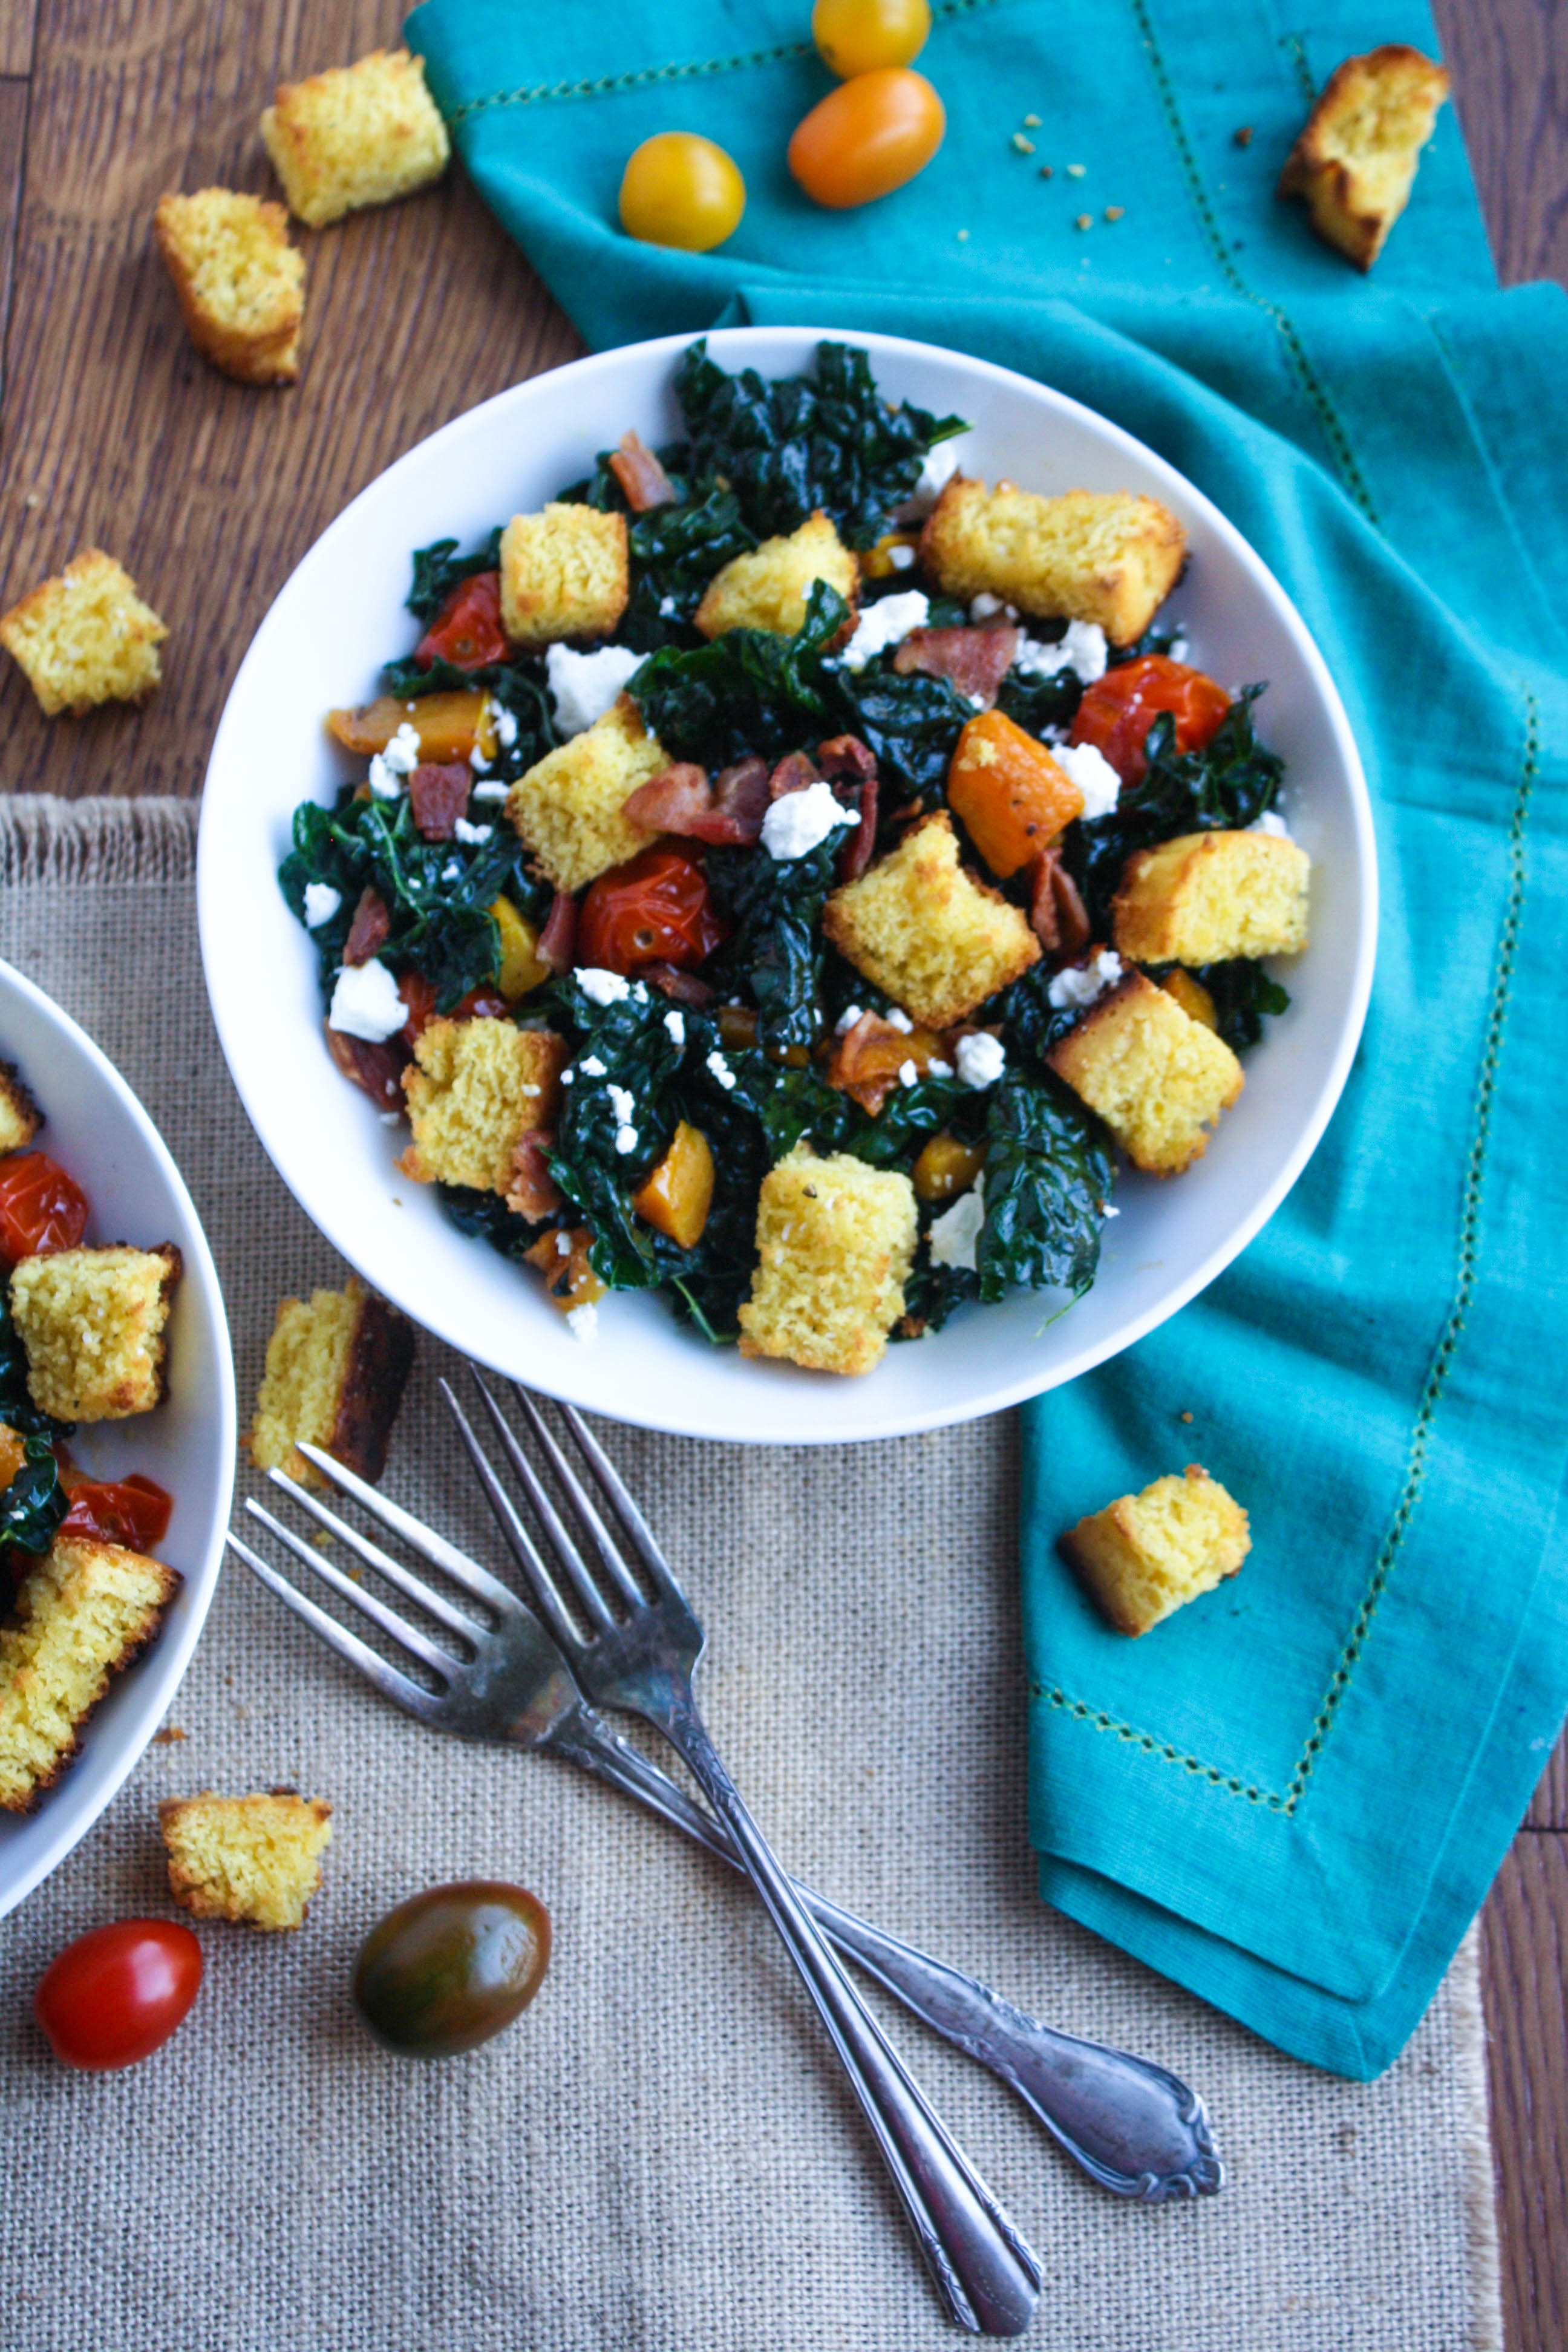 Kale and Cornbread Crouton Salad makes a great salad any day of the year, but especially after Thanksgiving. Cornbread croutons are a nice touch to this kale salad.